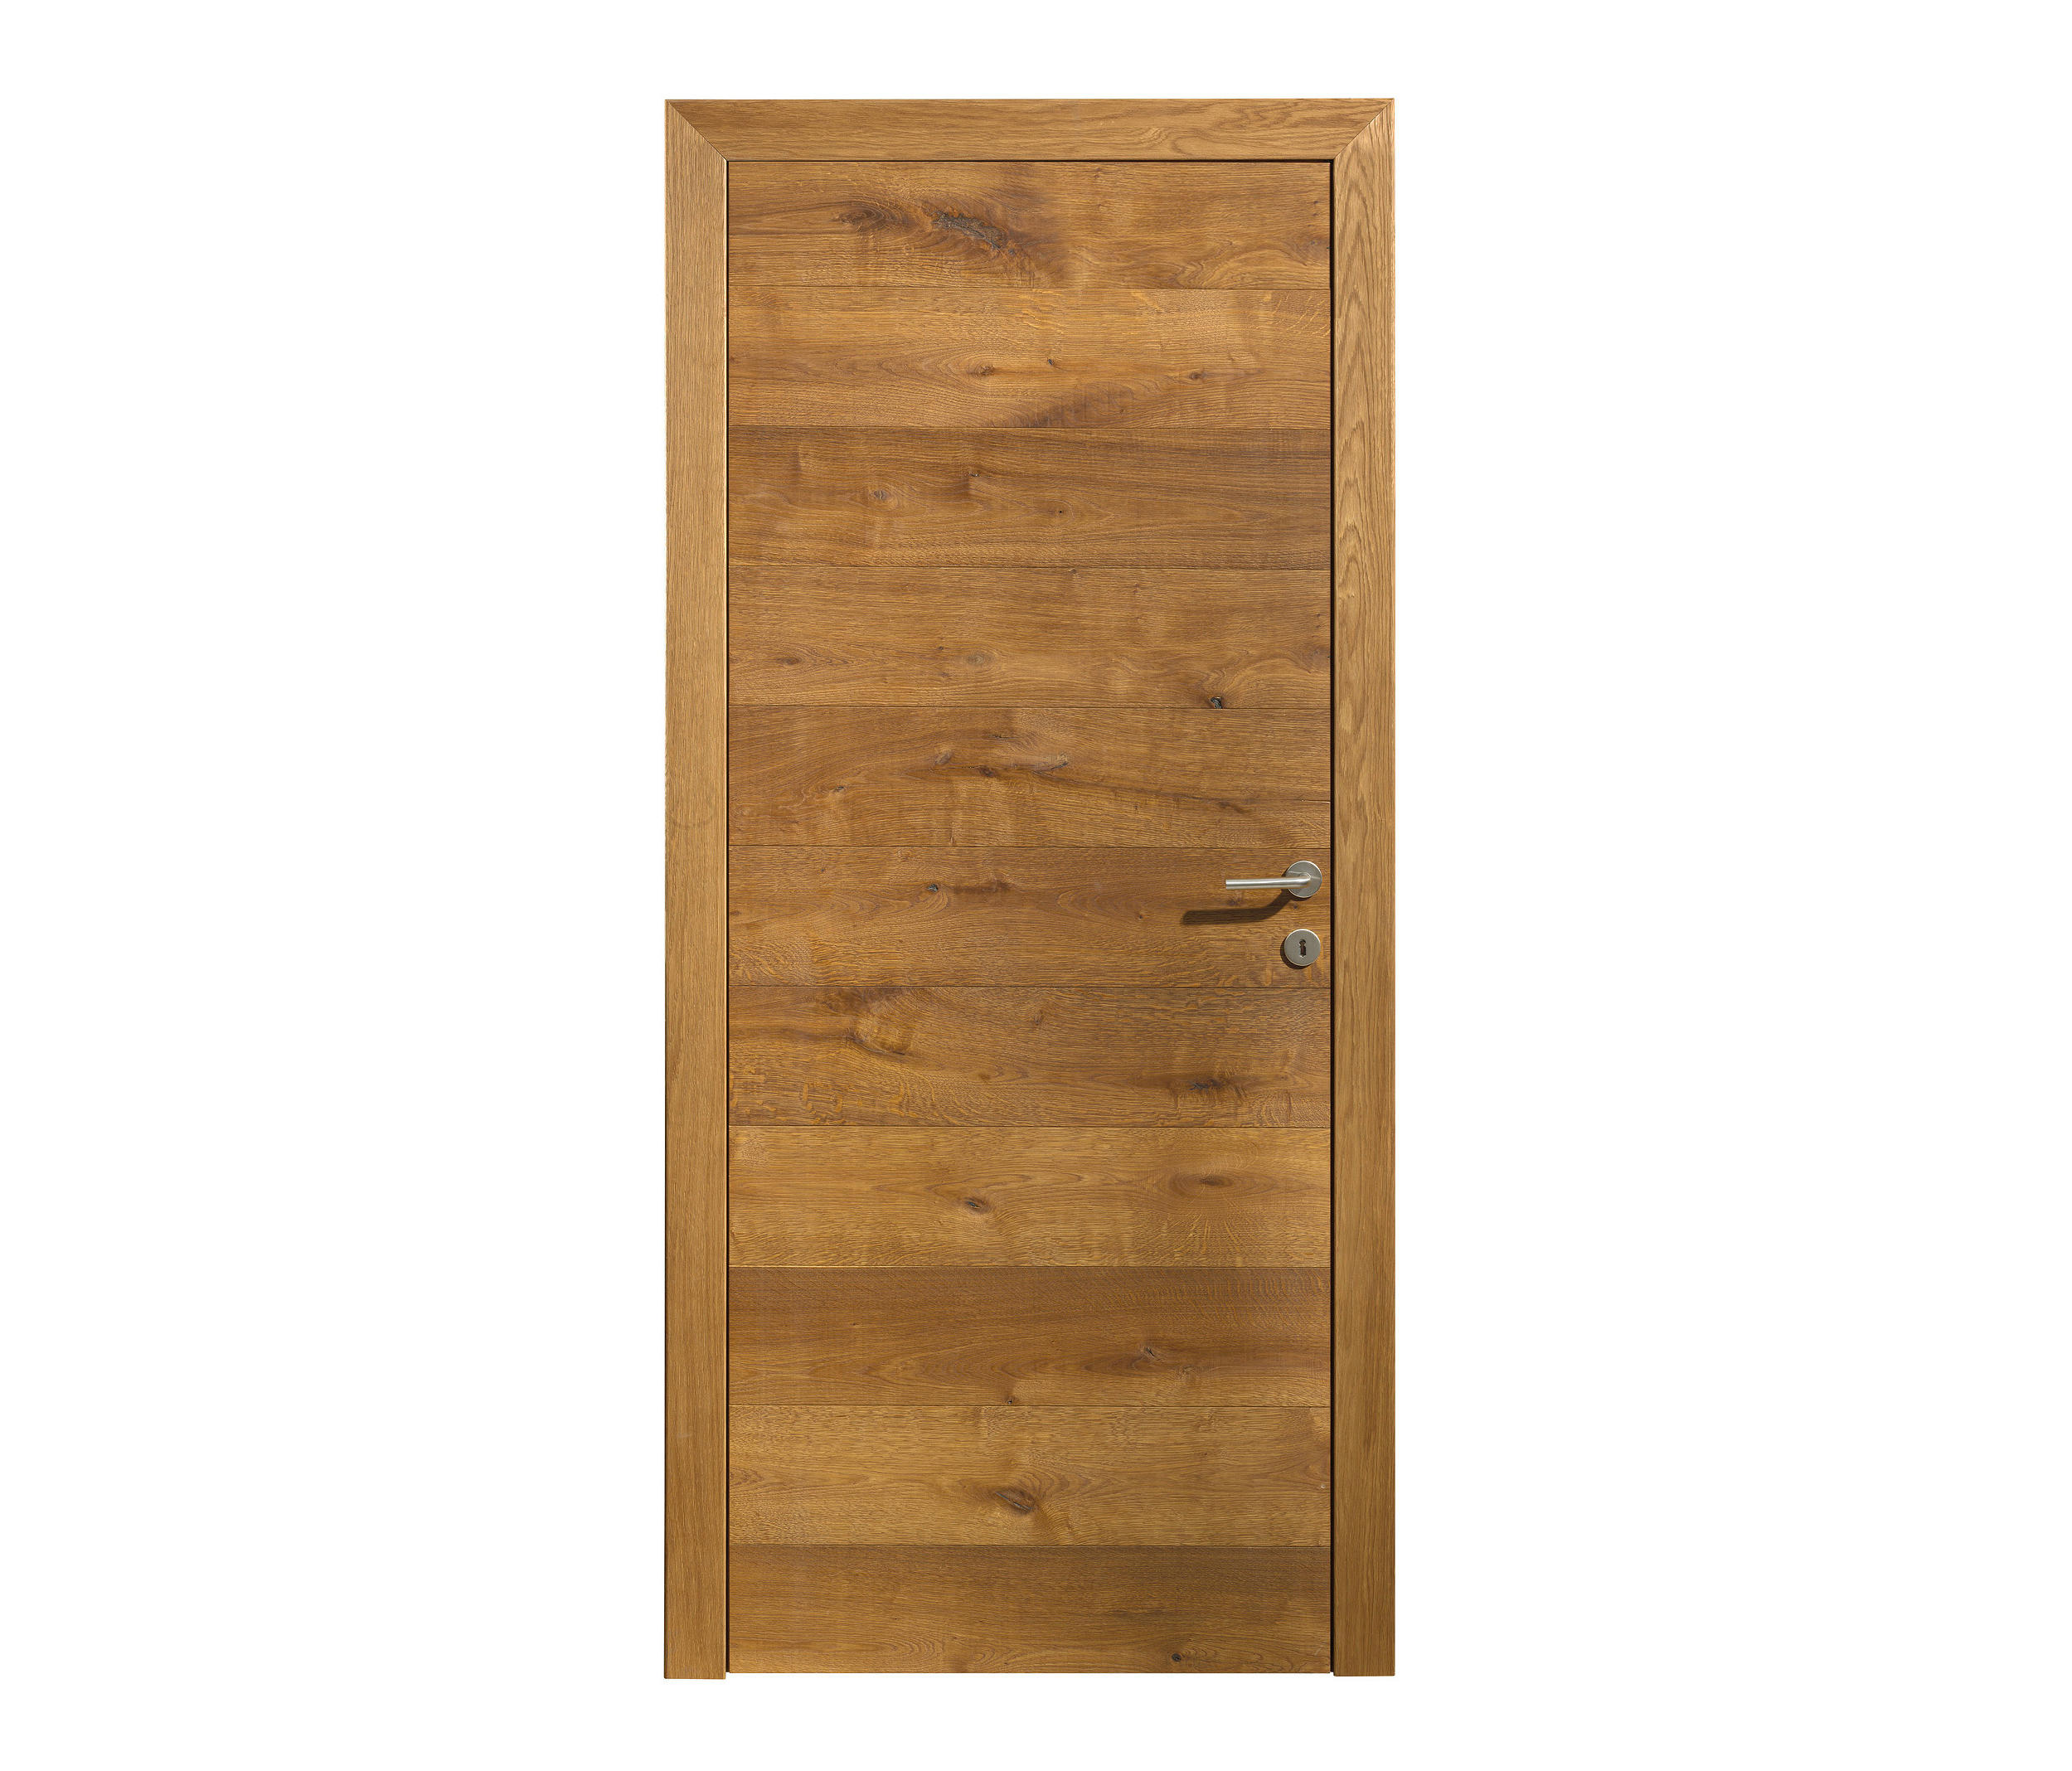 natural wardrobes handballtunisie org l noteworthy drawers sliding f doors with door inside closet wooden